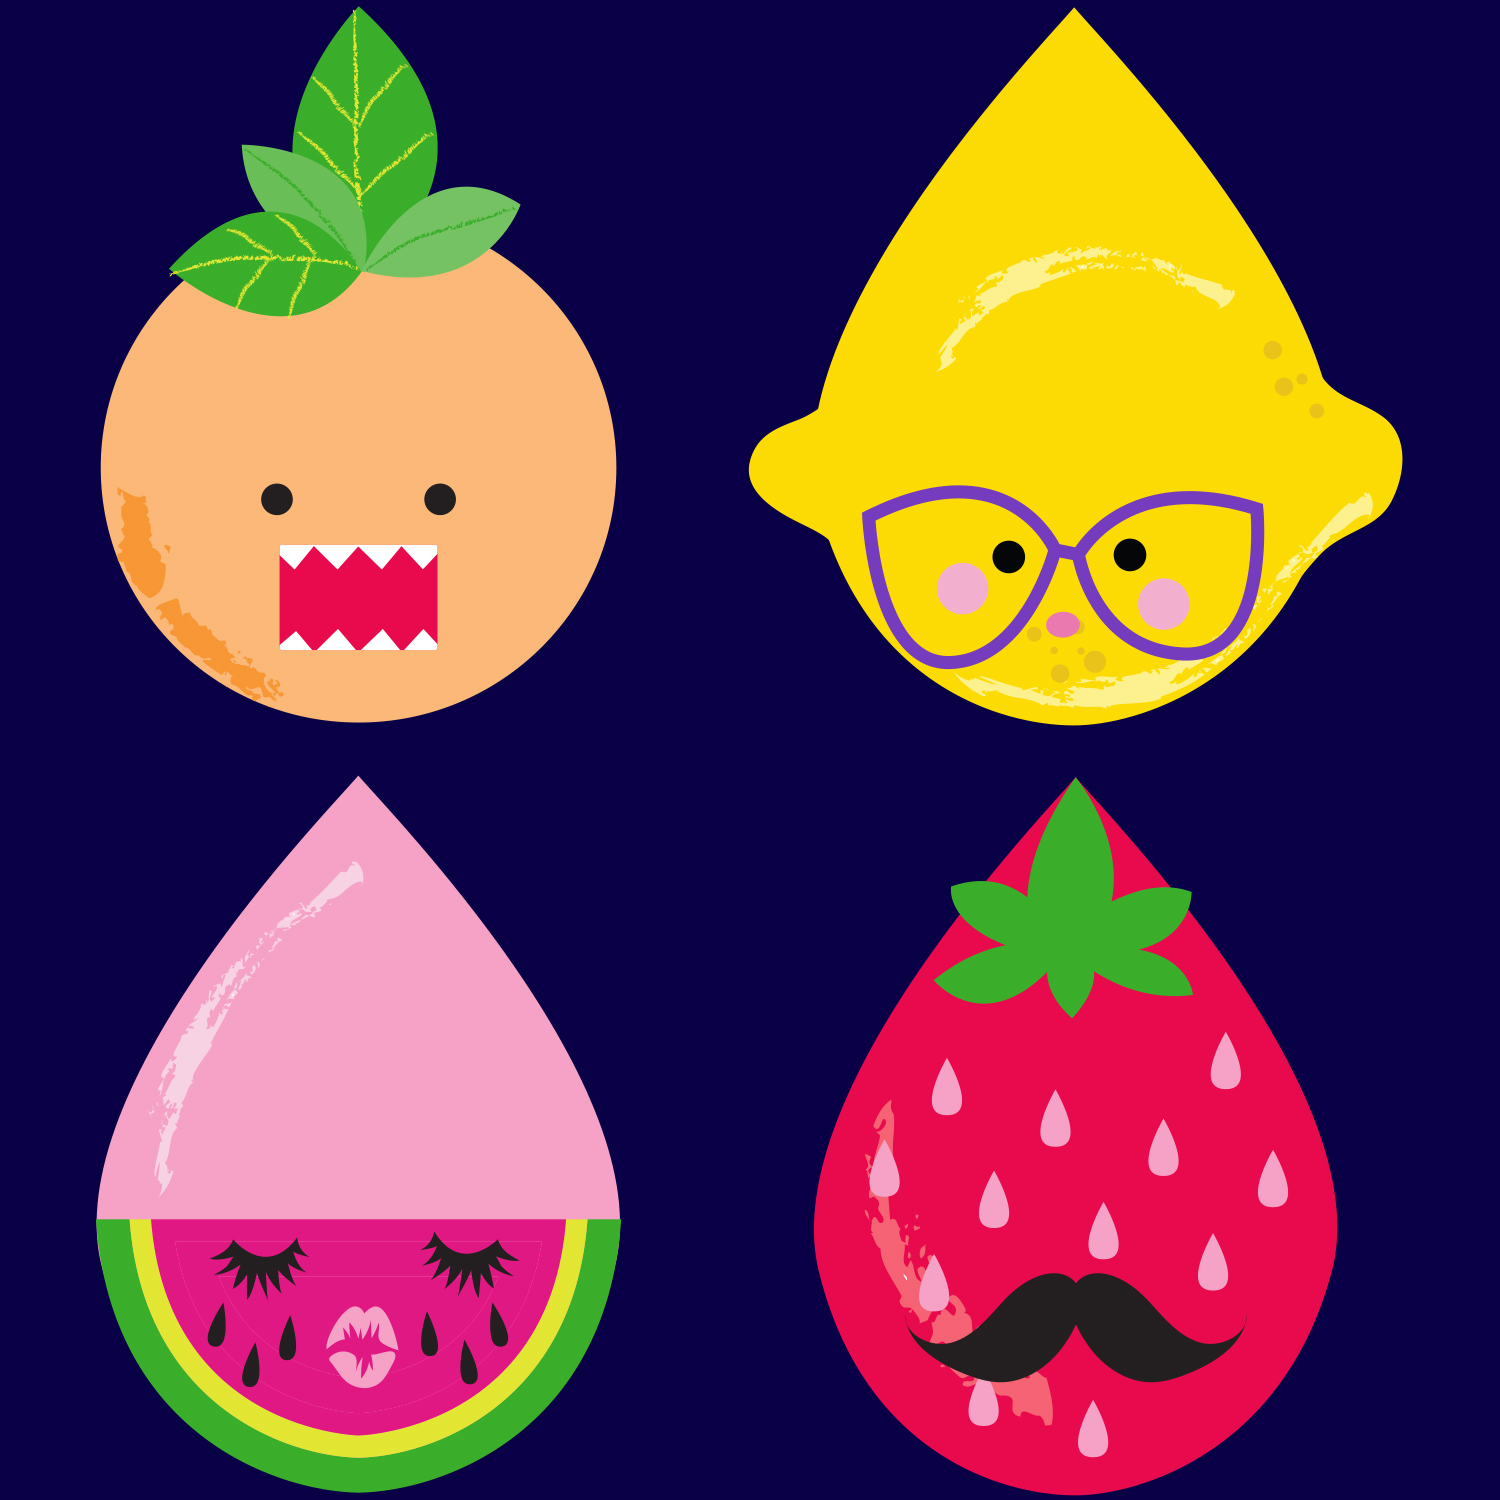 Mona Daly Illustration fruit drops with faces